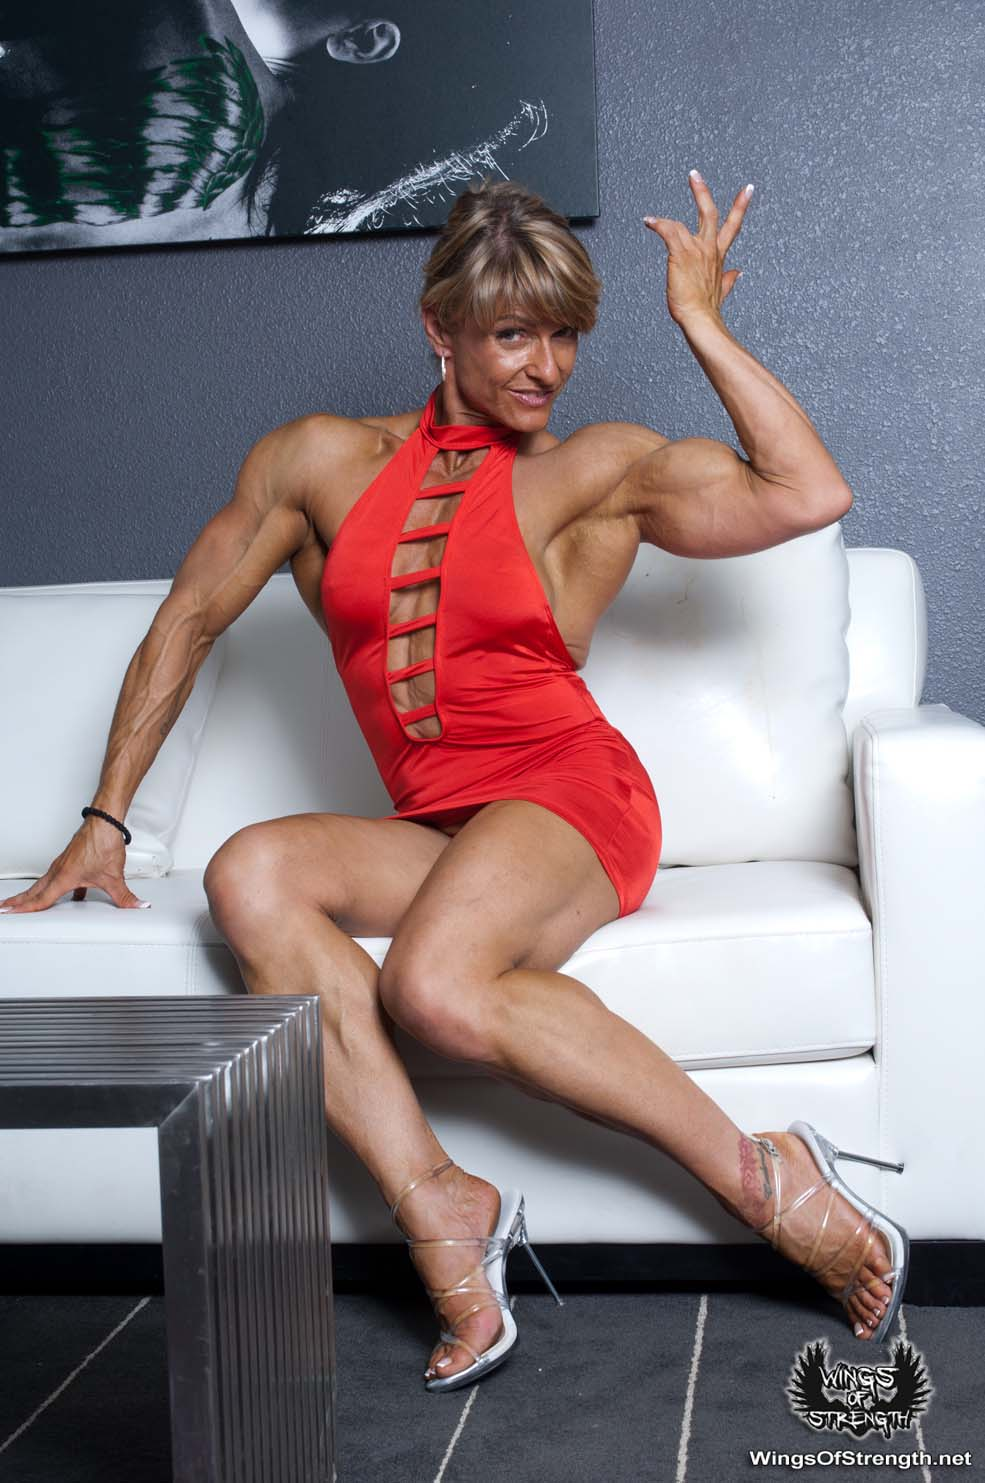 Emery Miller Modeling Her Ripped Physique | Female Muscle